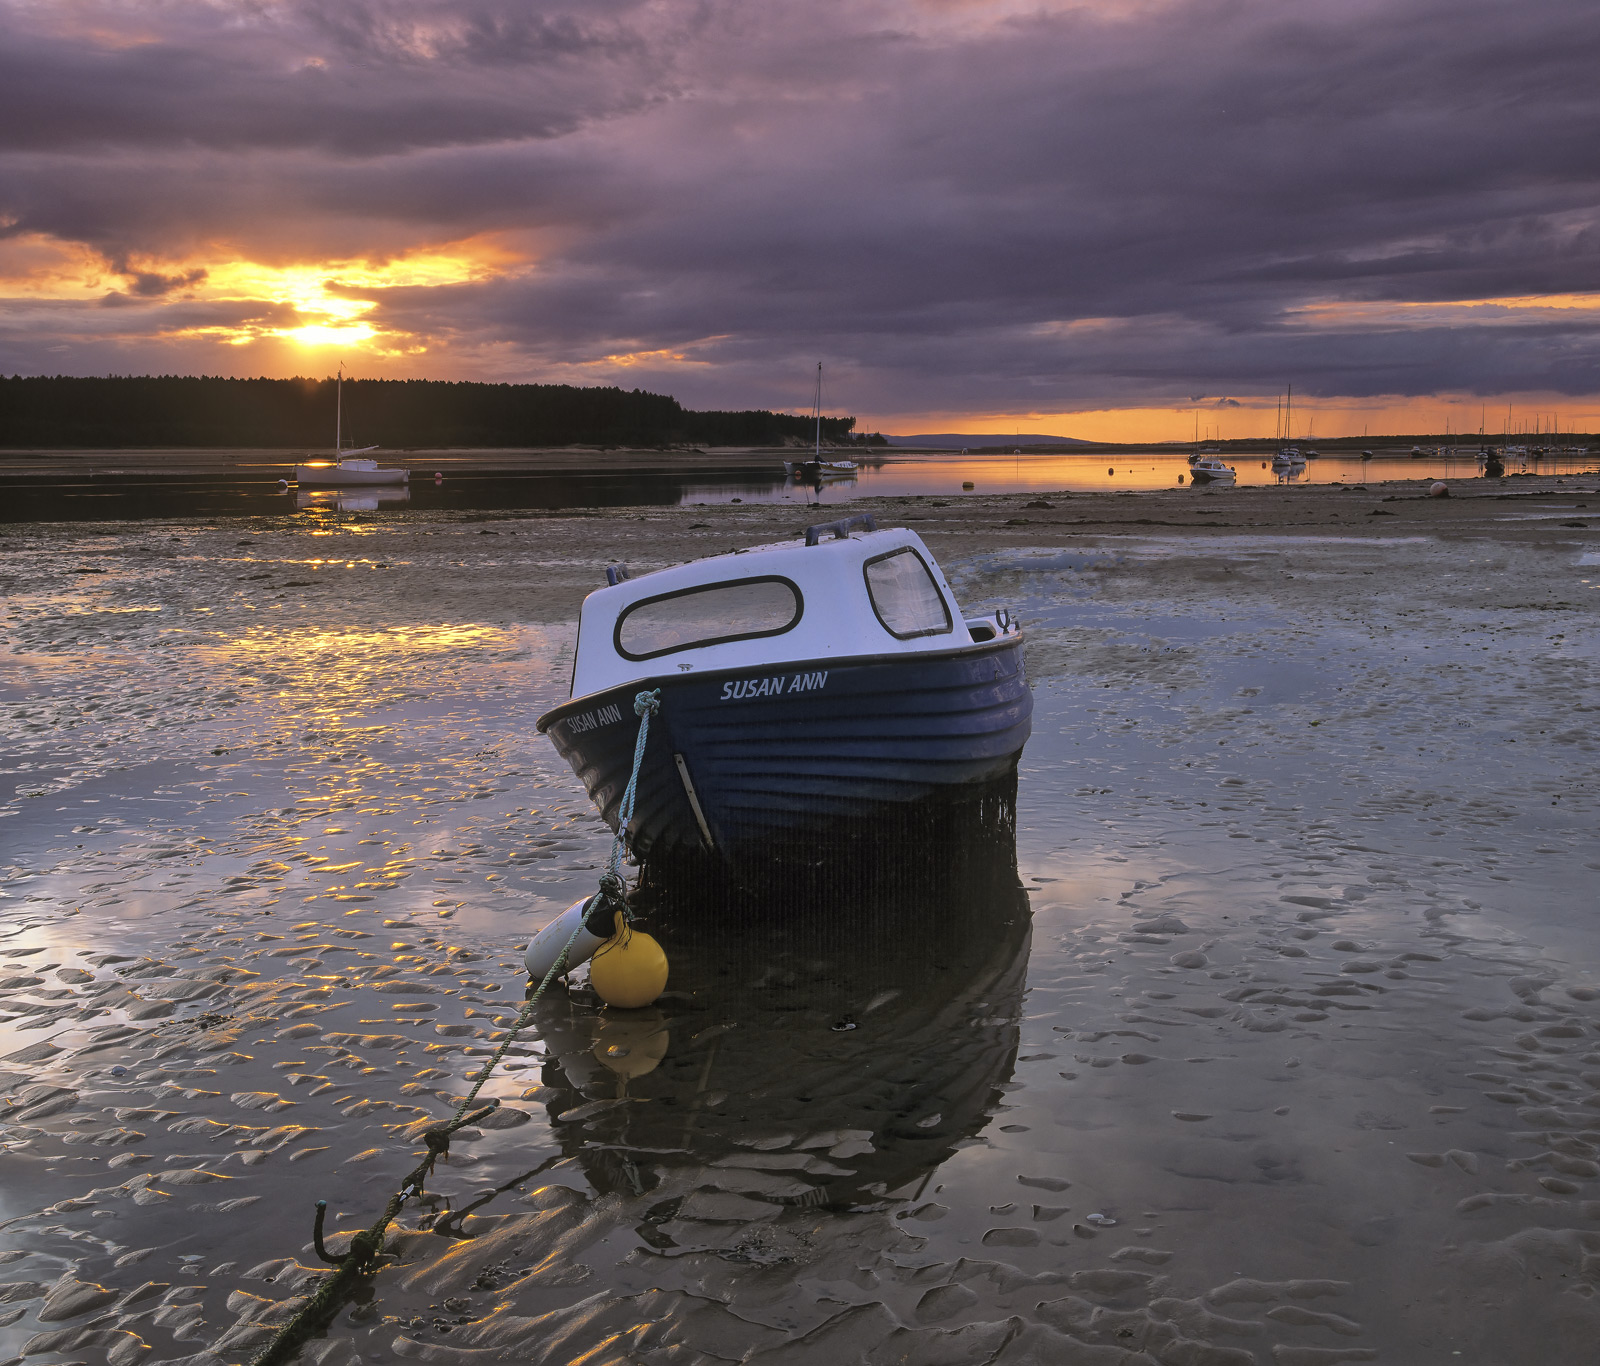 The Findhorn estuary at low tide creates sand banks that stretch almost all the way across to Culbin on the other side without...